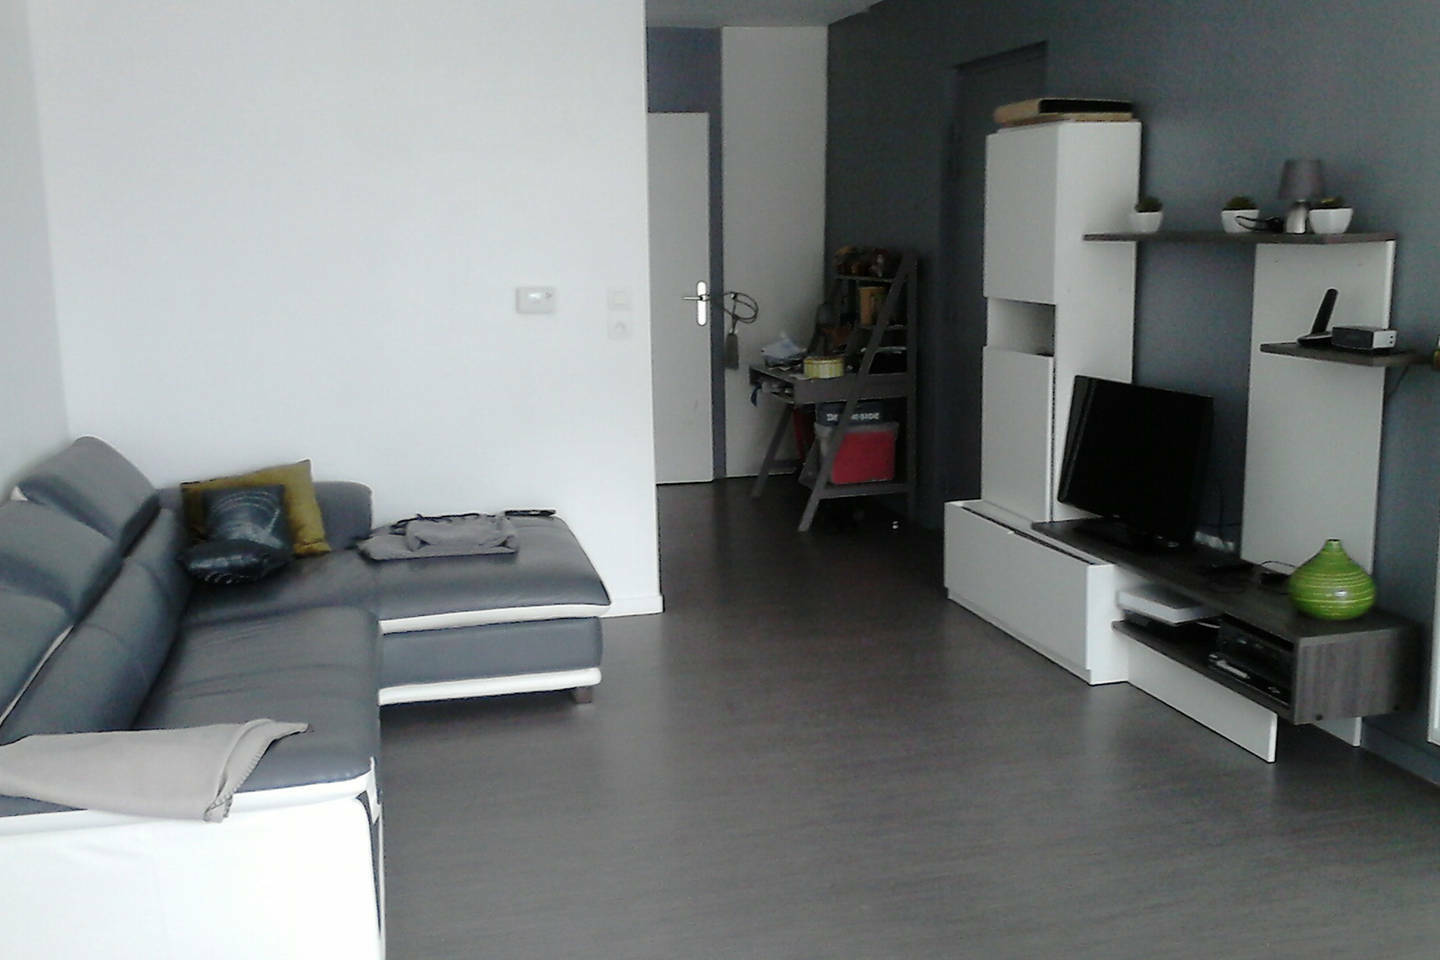 Room To Rent In The Week Or In The Month